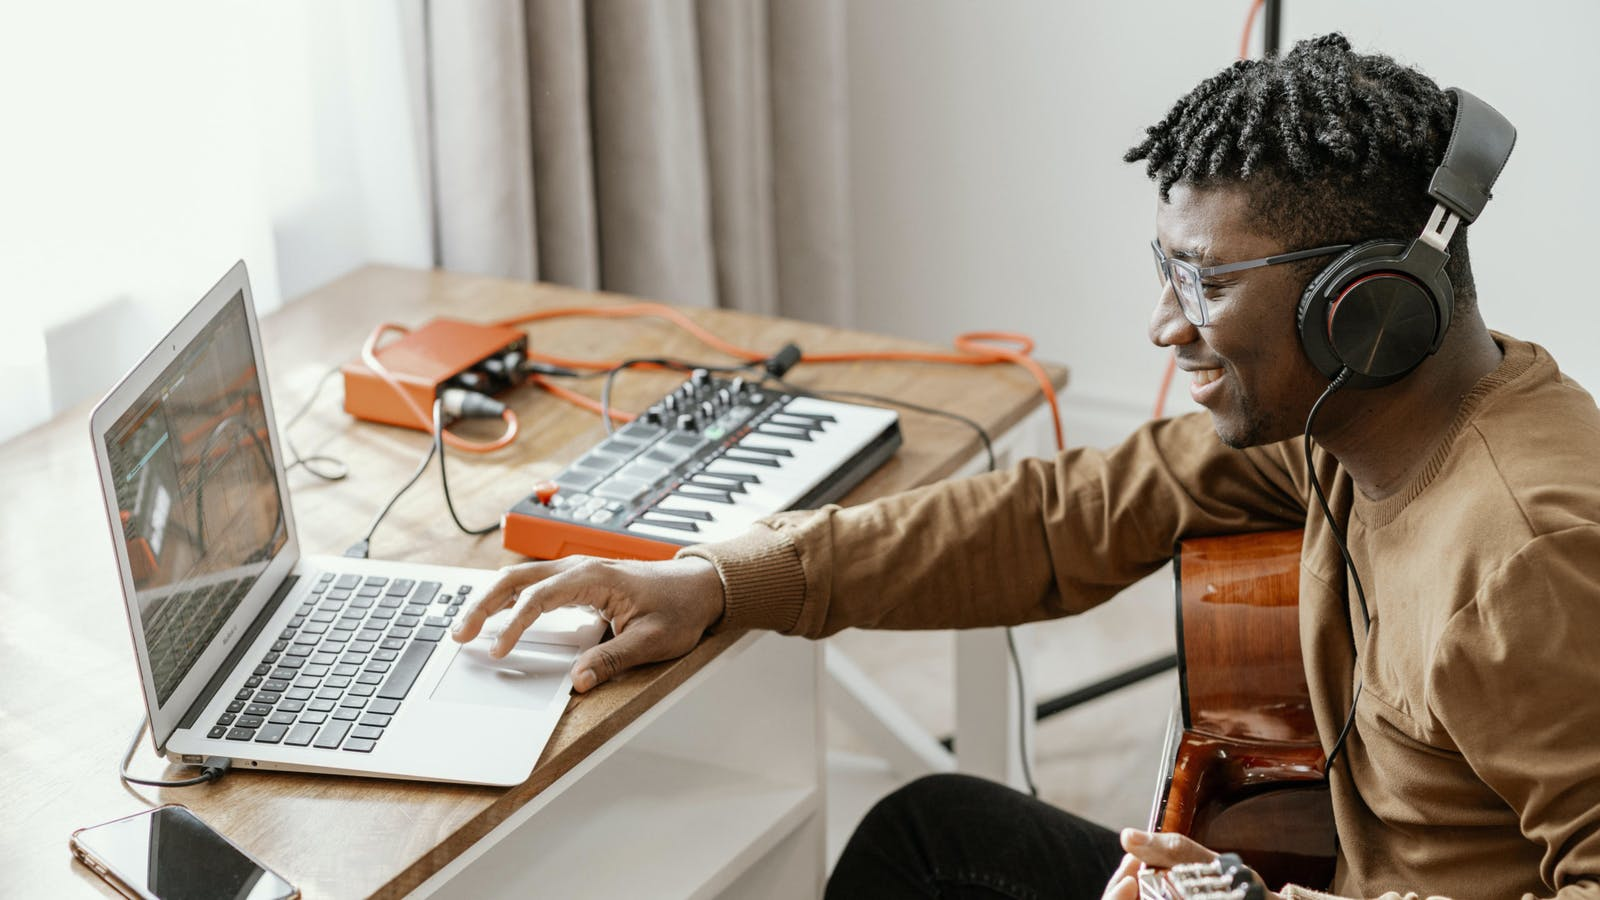 Man using music production software and playing guitar